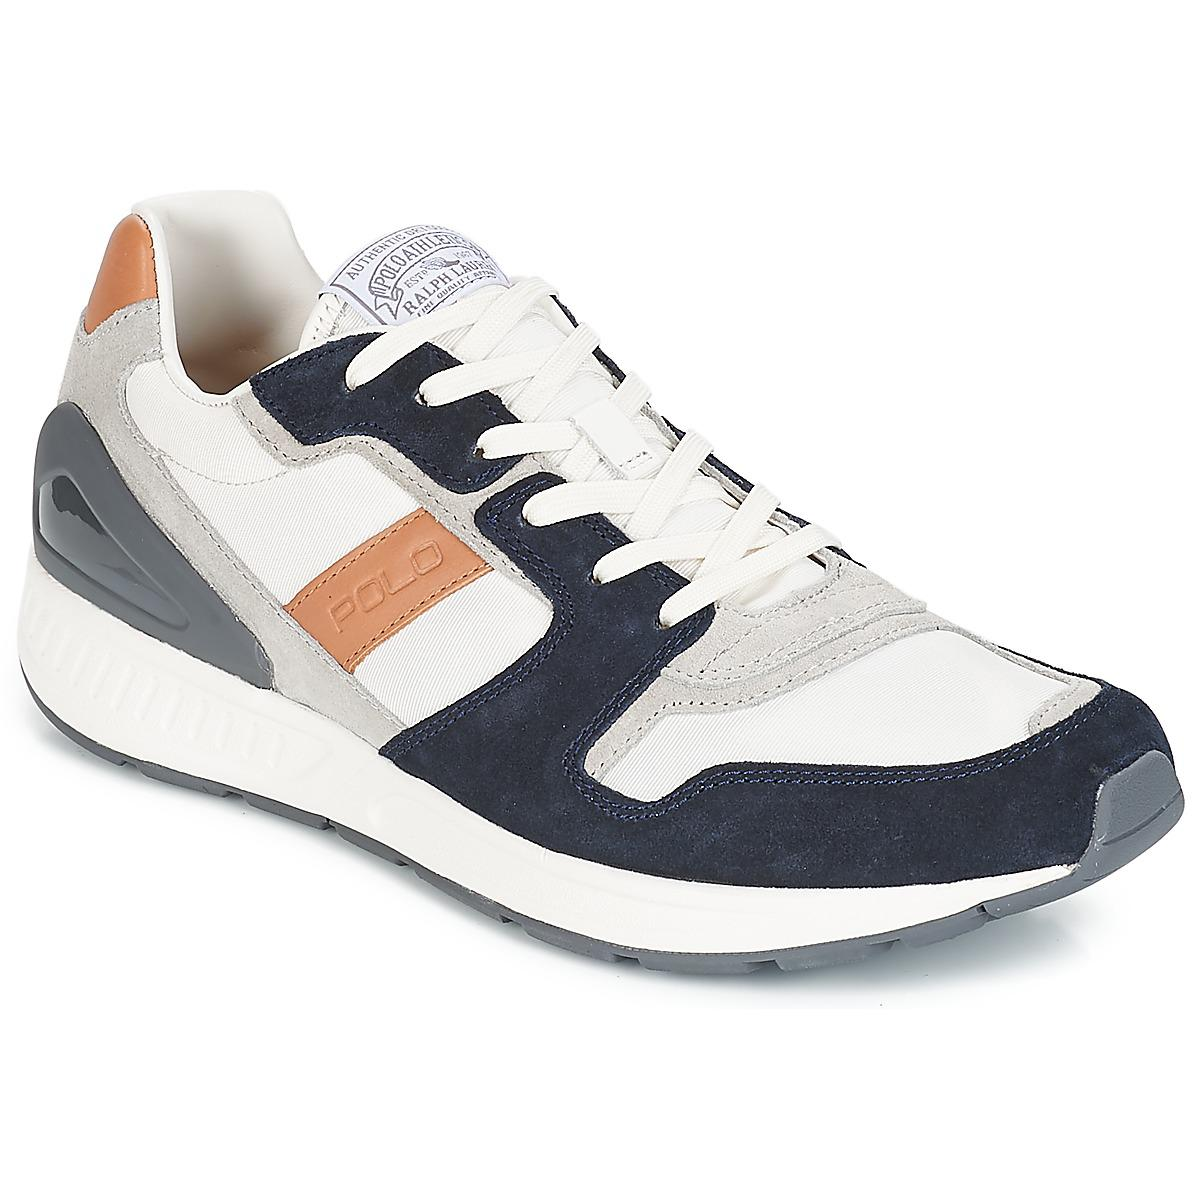 Polo Ralph Lauren Train 100 Cls Men s Shoes (trainers) In Grey in ... 82ddda3c970